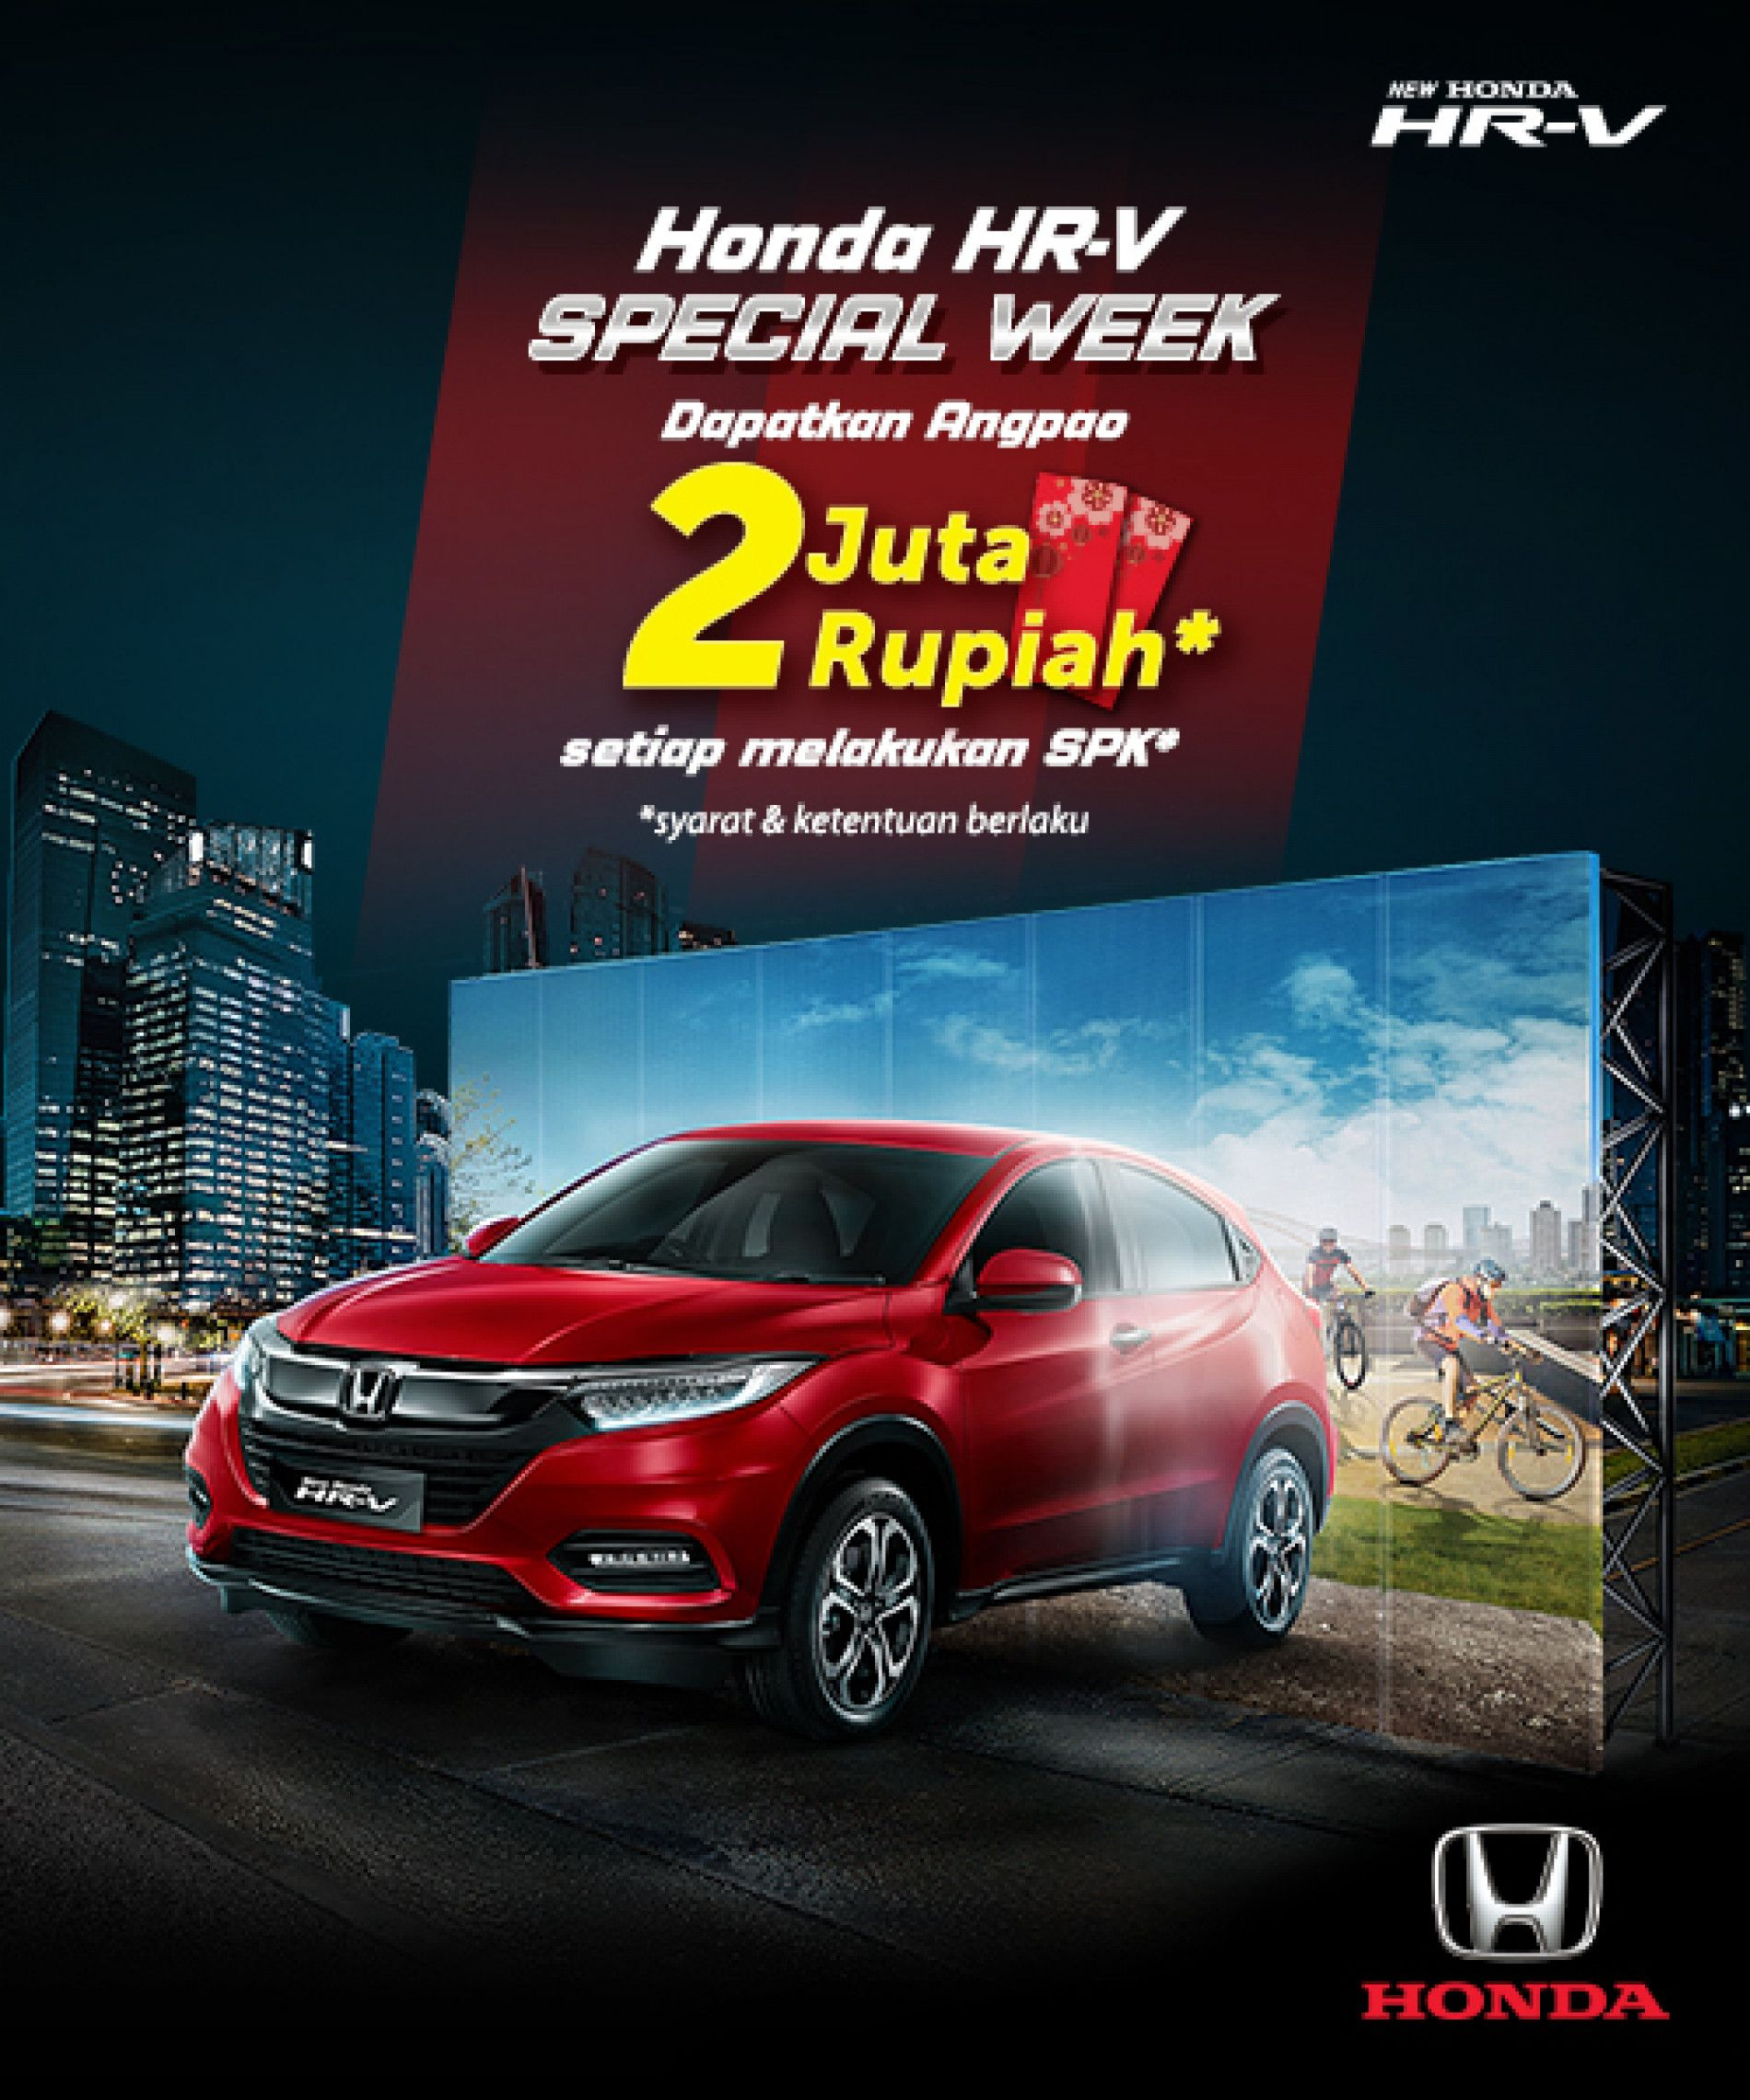 Honda HR-V Special Week